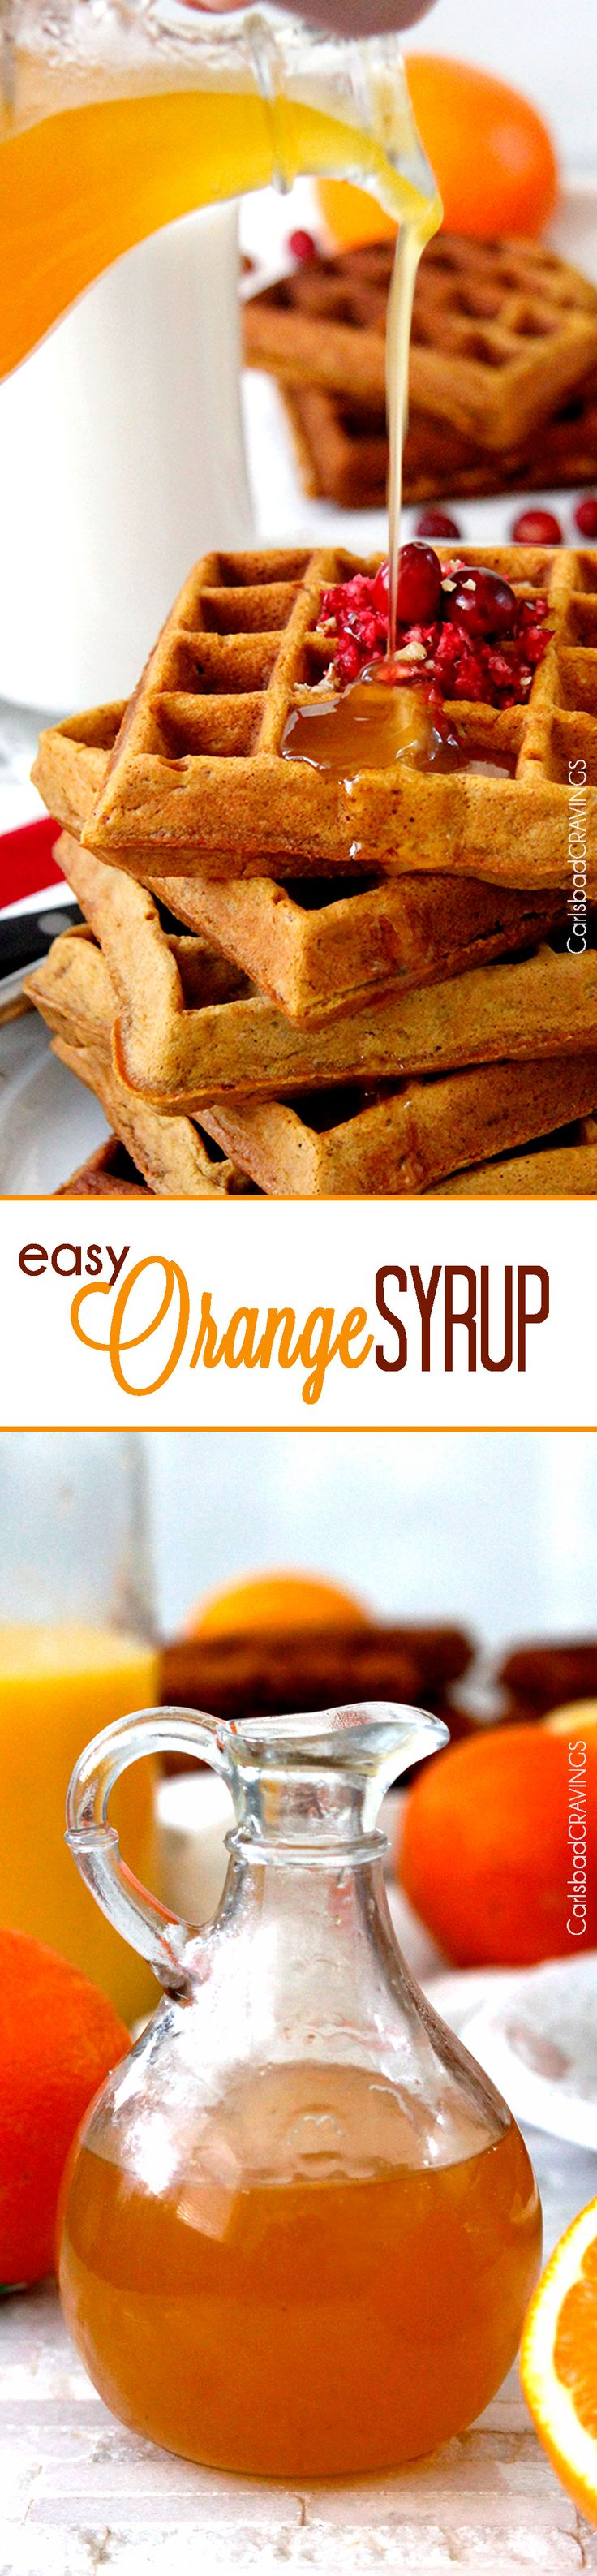 10 Minute, 4 ingredient, EASY Orange Syrup - sweet, silky orange syrup makes everything better!  #breakfast #syrup